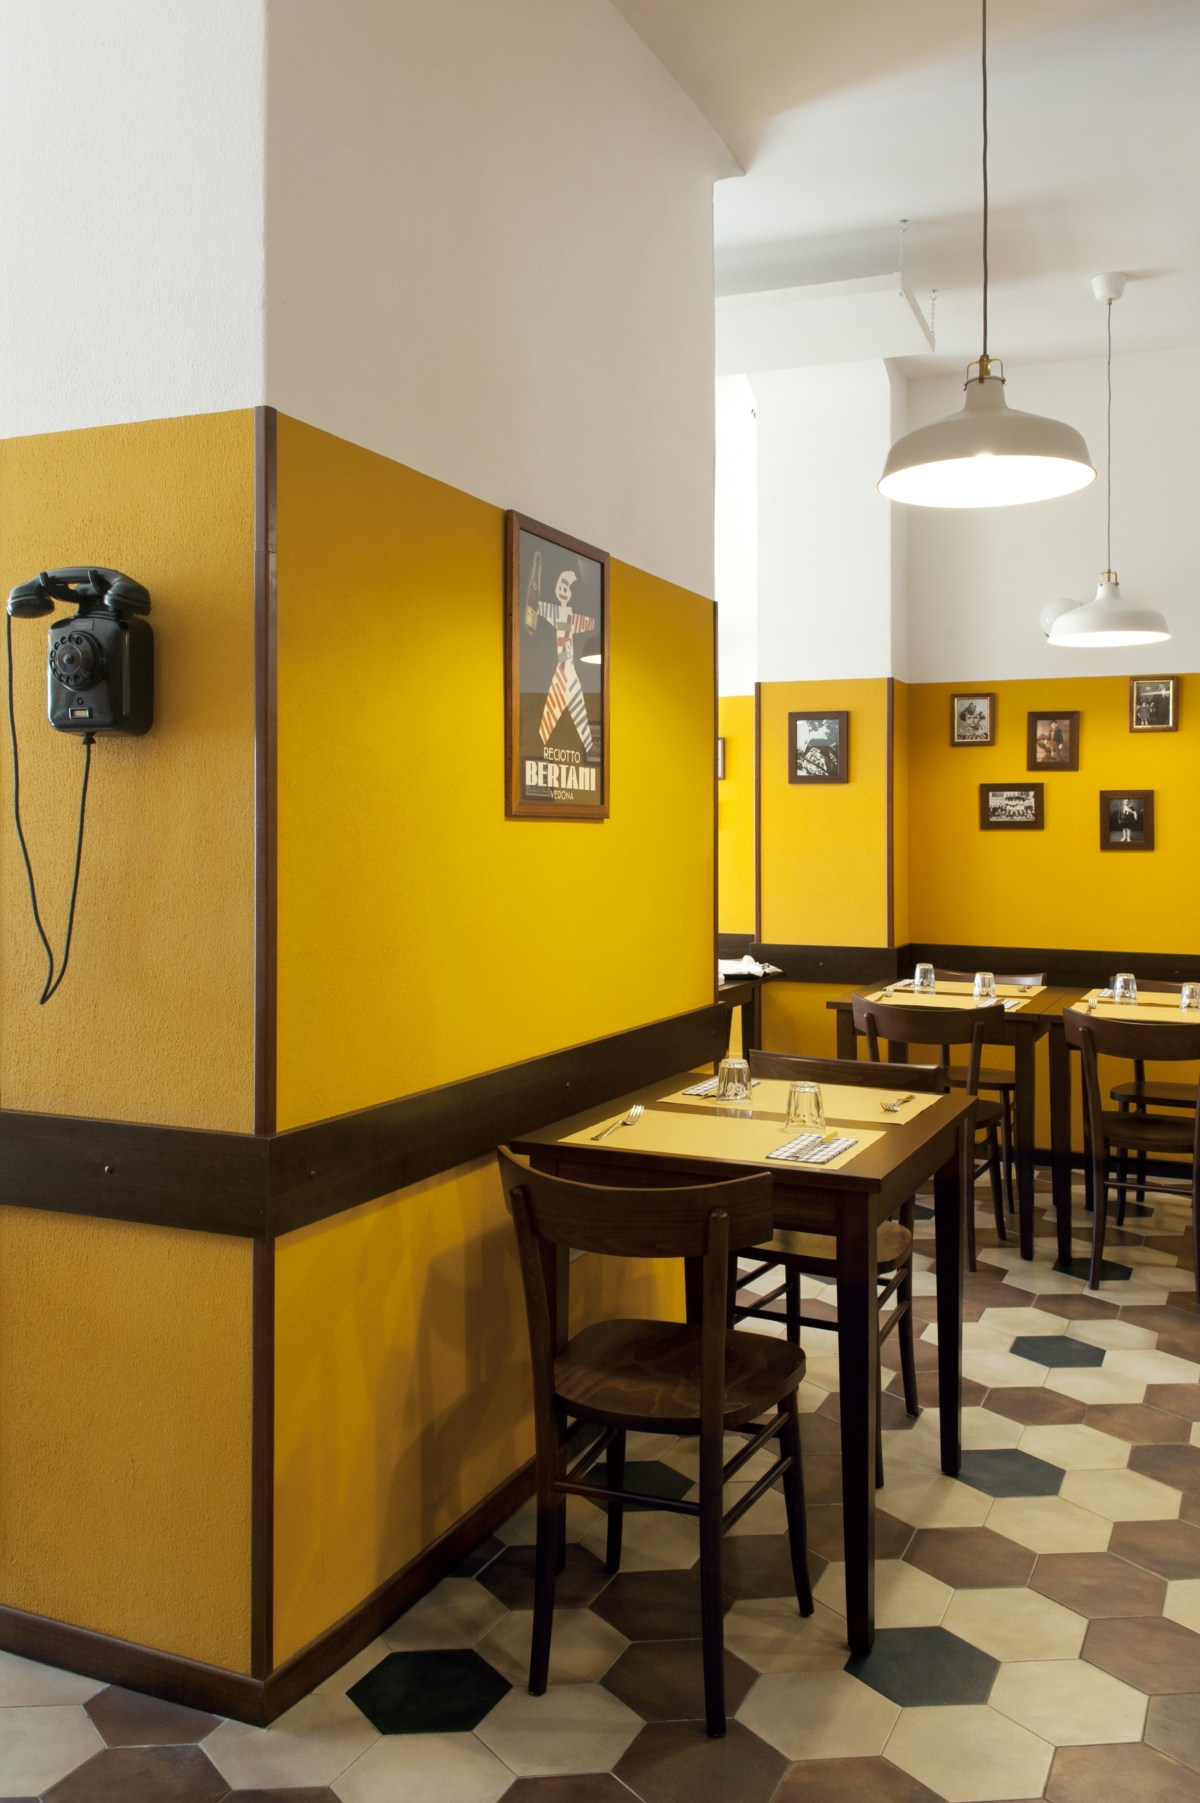 Tripe restaurant in Milan, old school restaurant interior design vintage 19